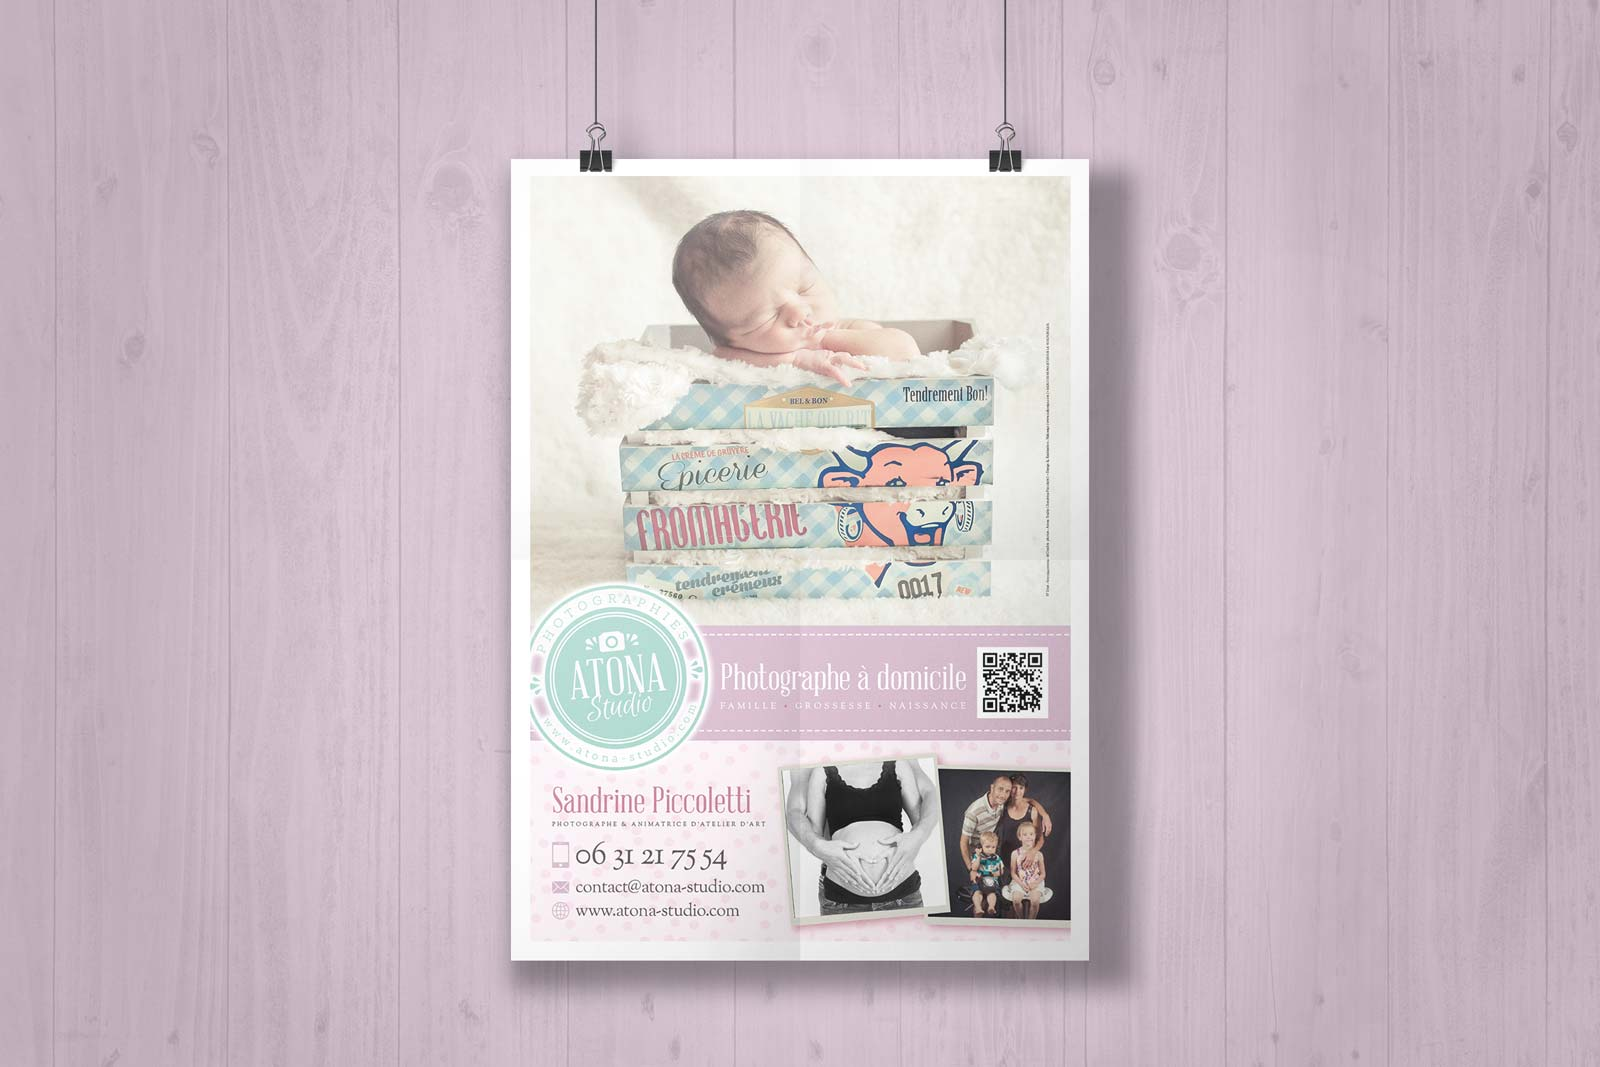 Atona Studio v2 - Communication baby affiche